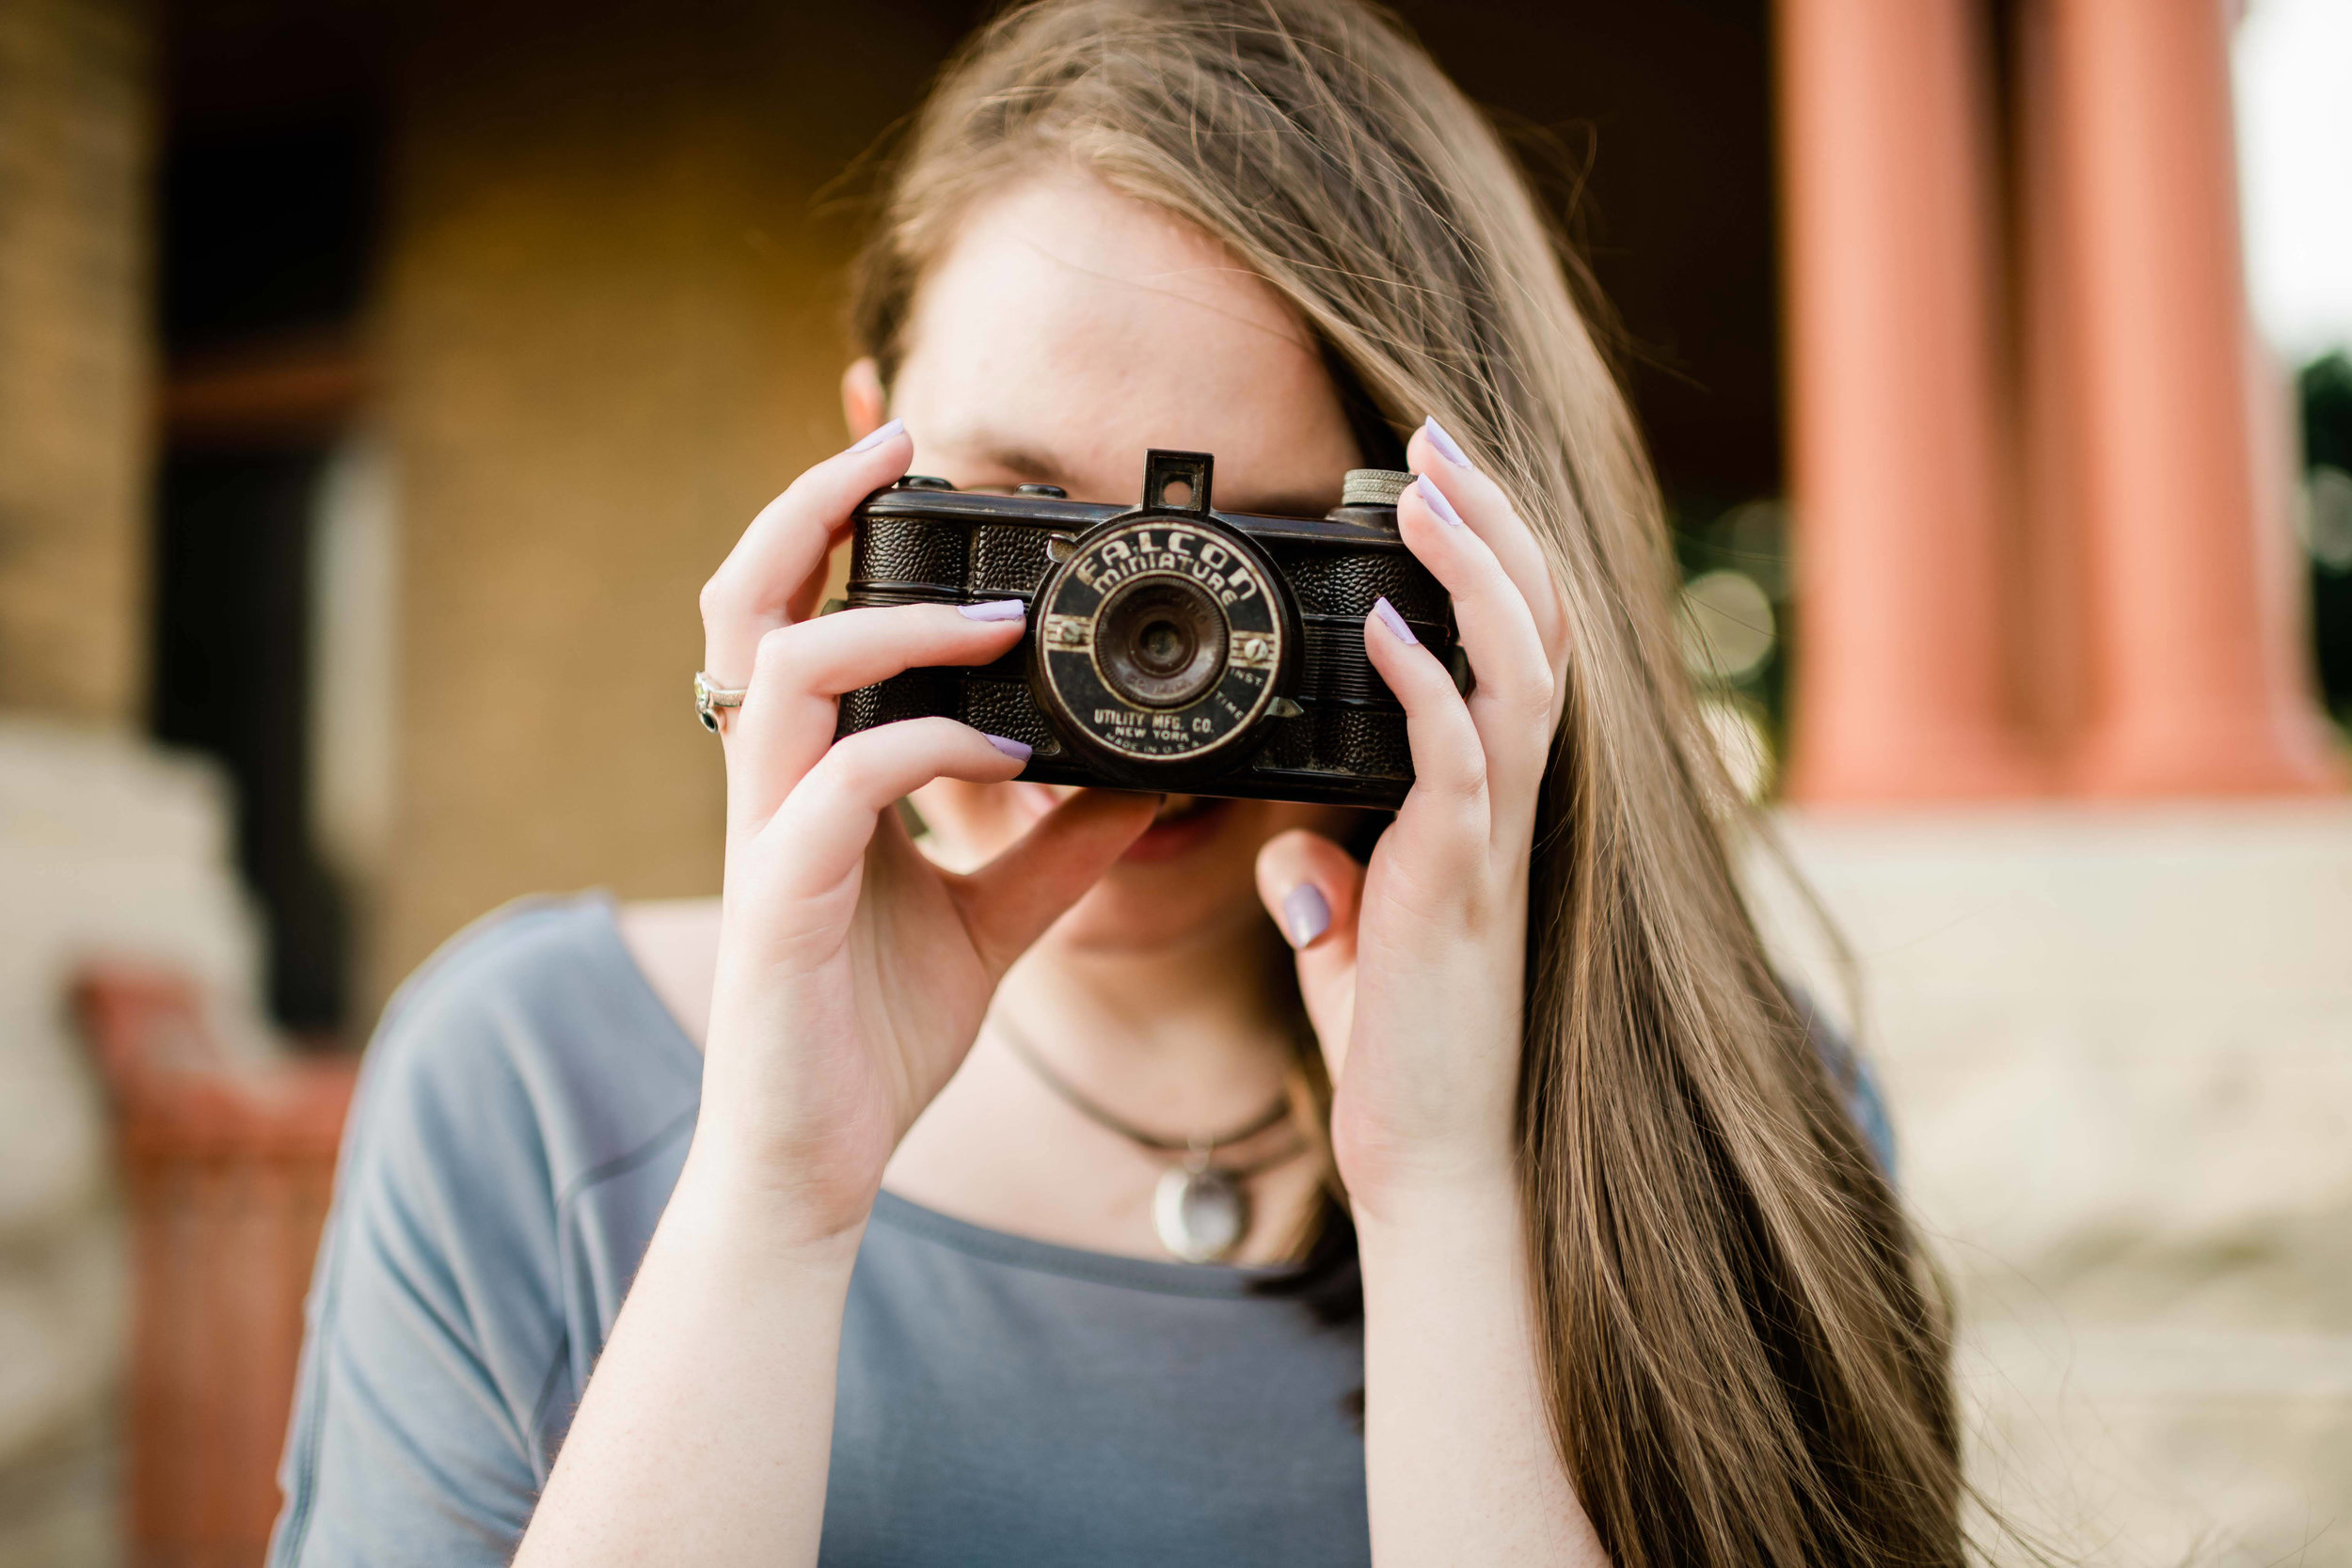 High school senior holding a camera up to her face